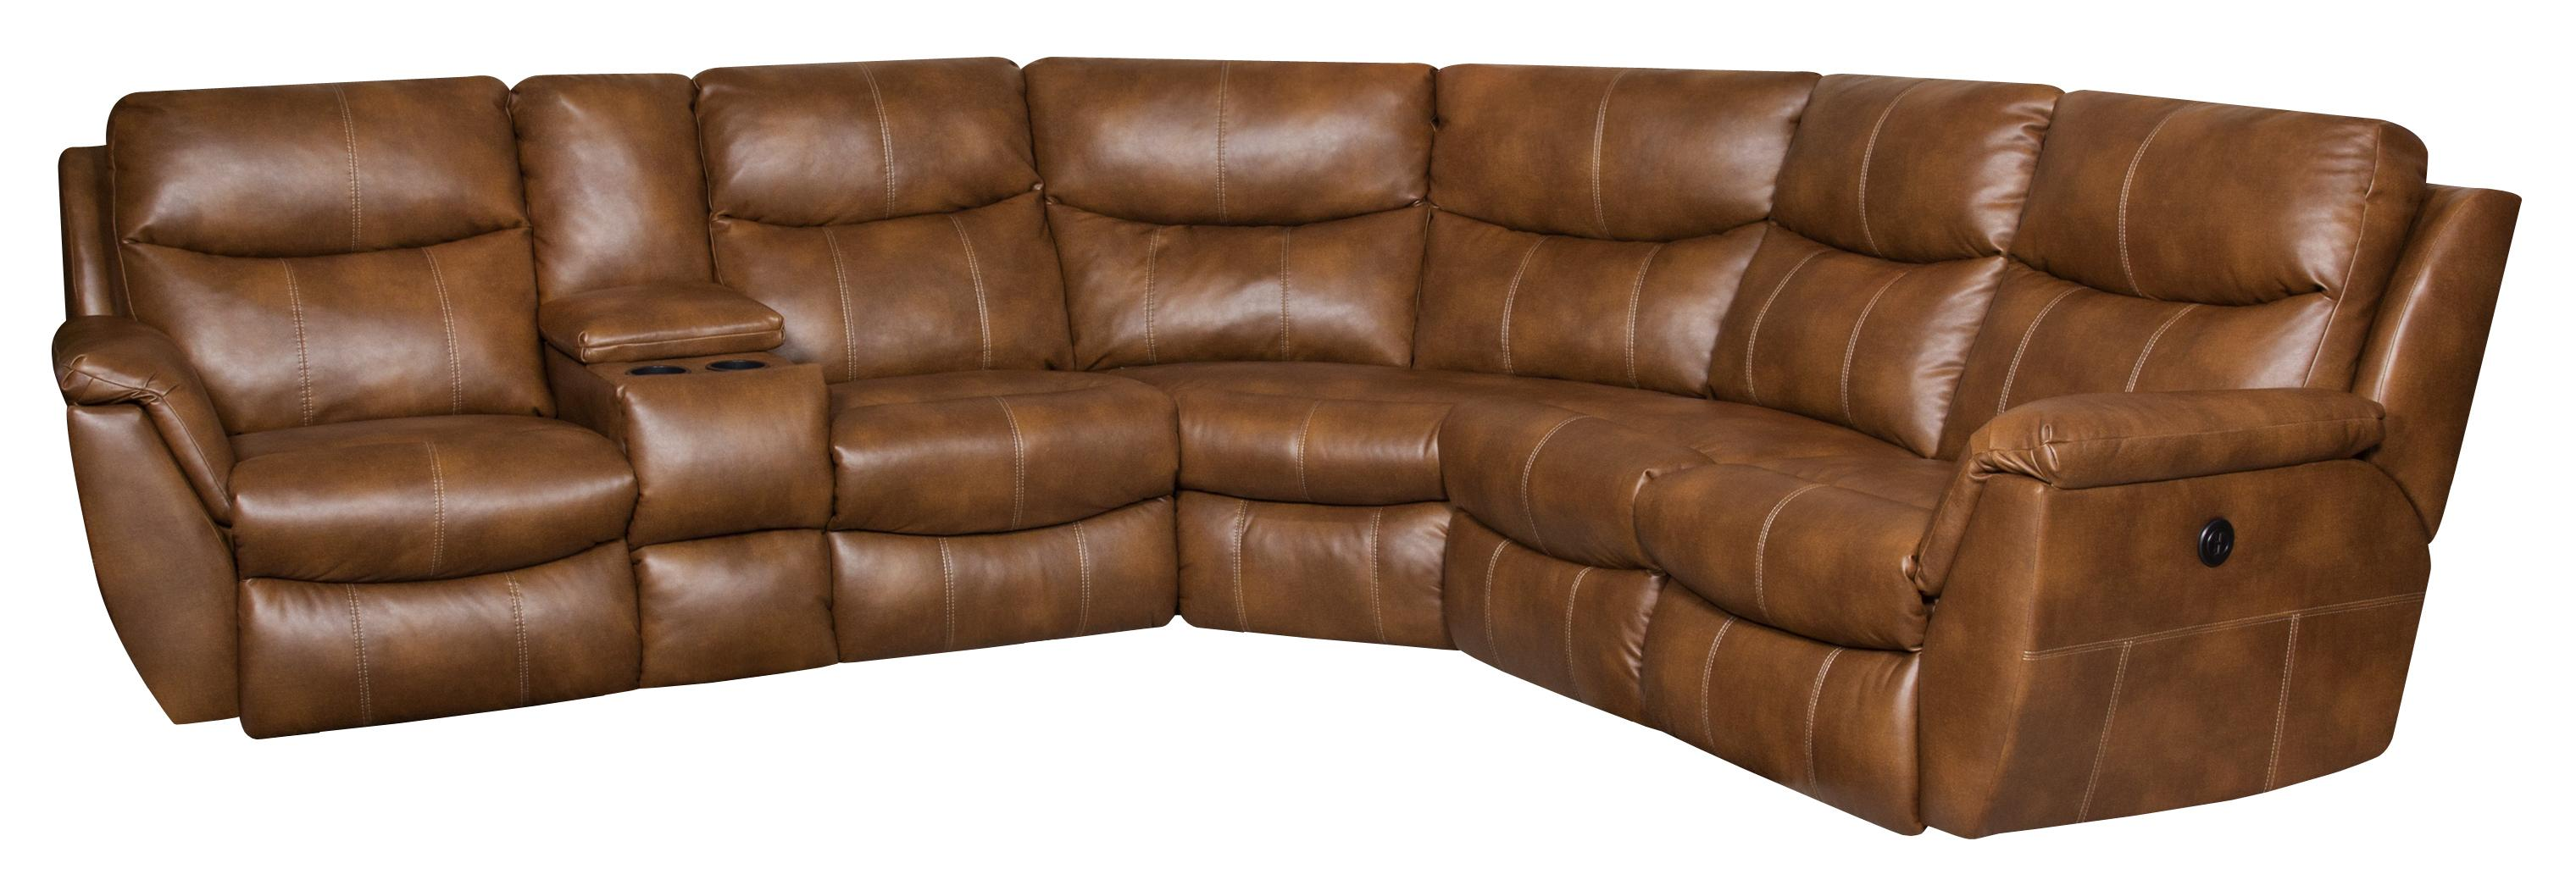 Southern Motion Monaco Reclining Sectional Sofa - Item Number: 564-07+47+92+84+92+08-241-17